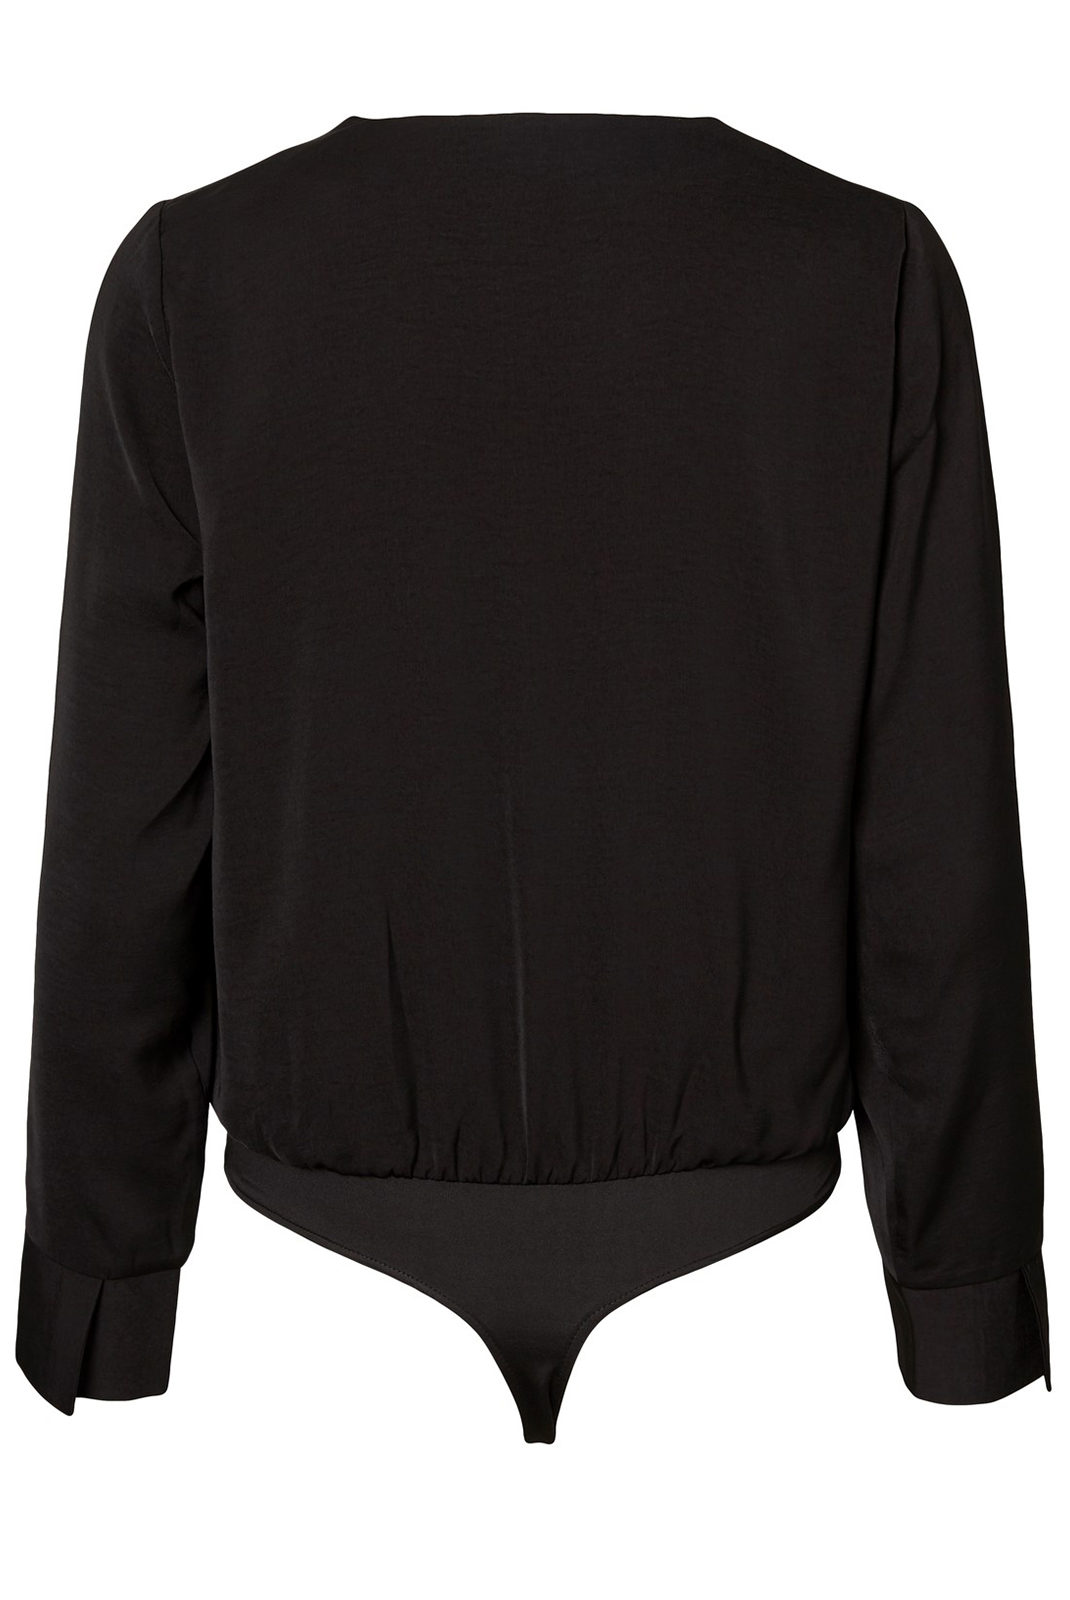 Top   Vero moda FREYA LACE L/S BODY SB1 Black